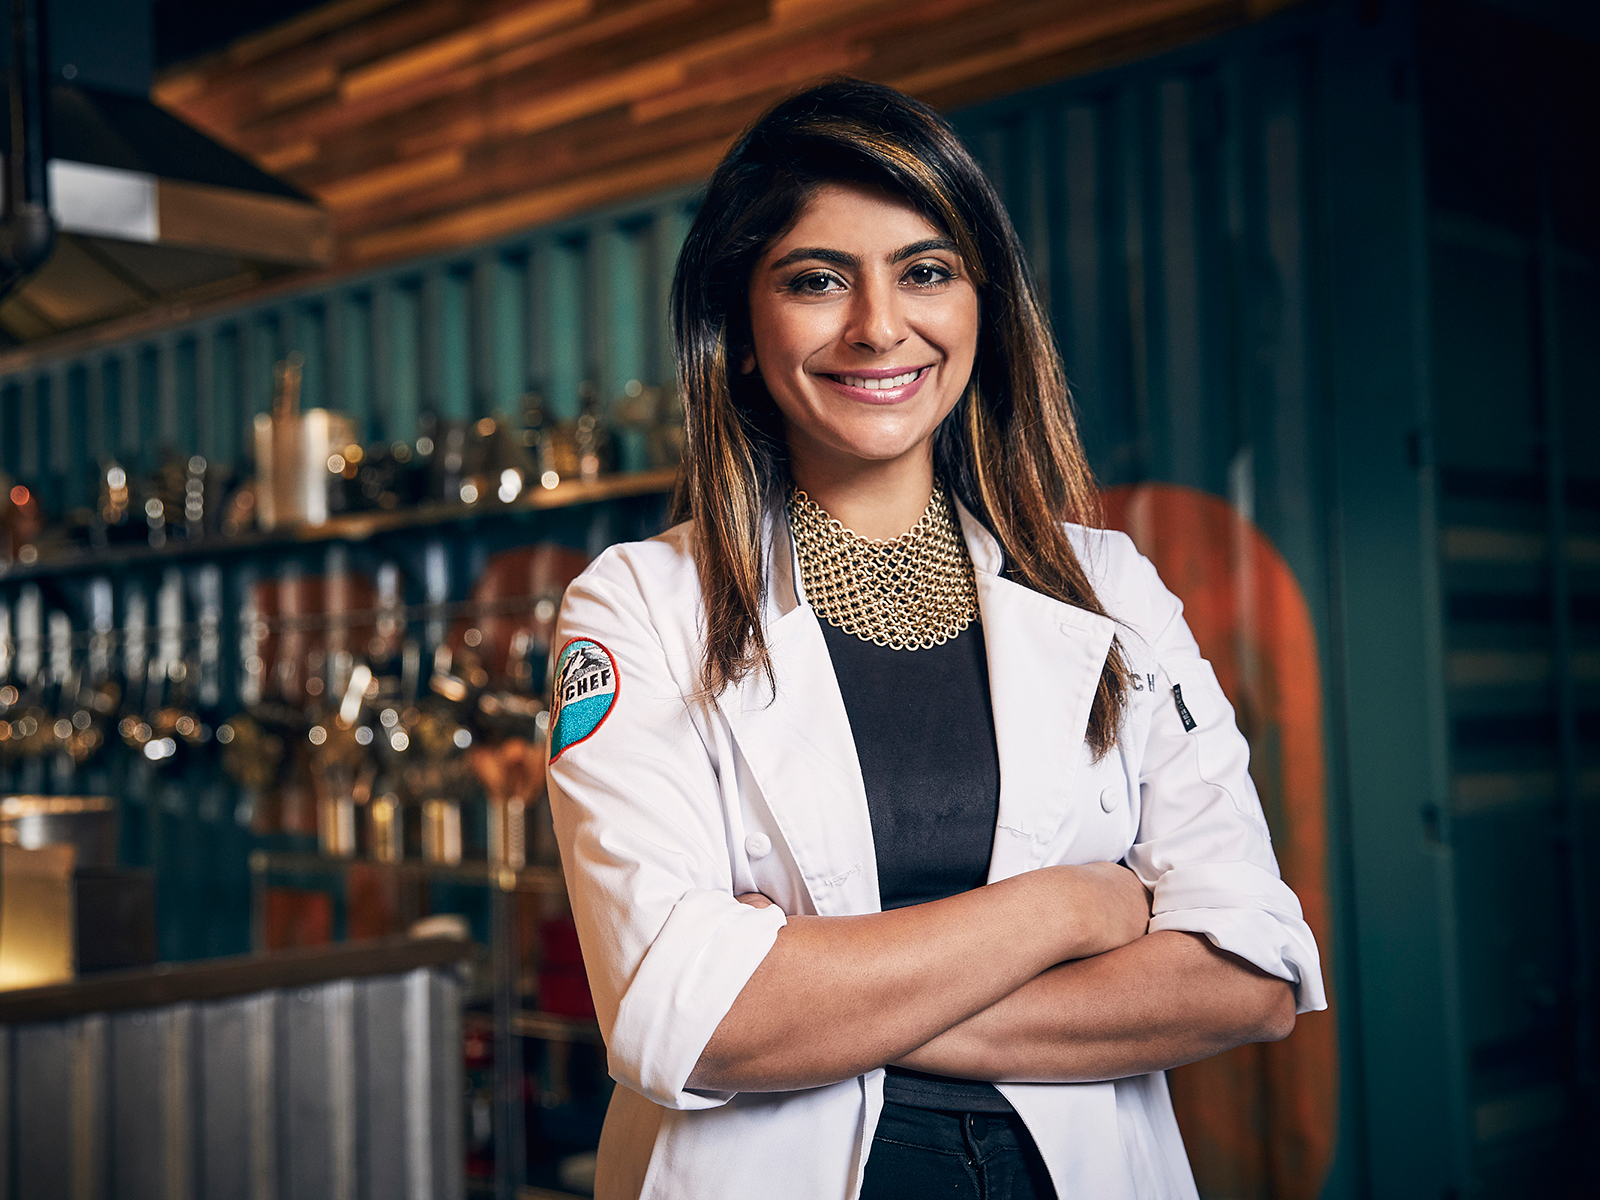 'Top Chef's' Fatima Ali Is Proud to Be a 'Relatable Pakistani'